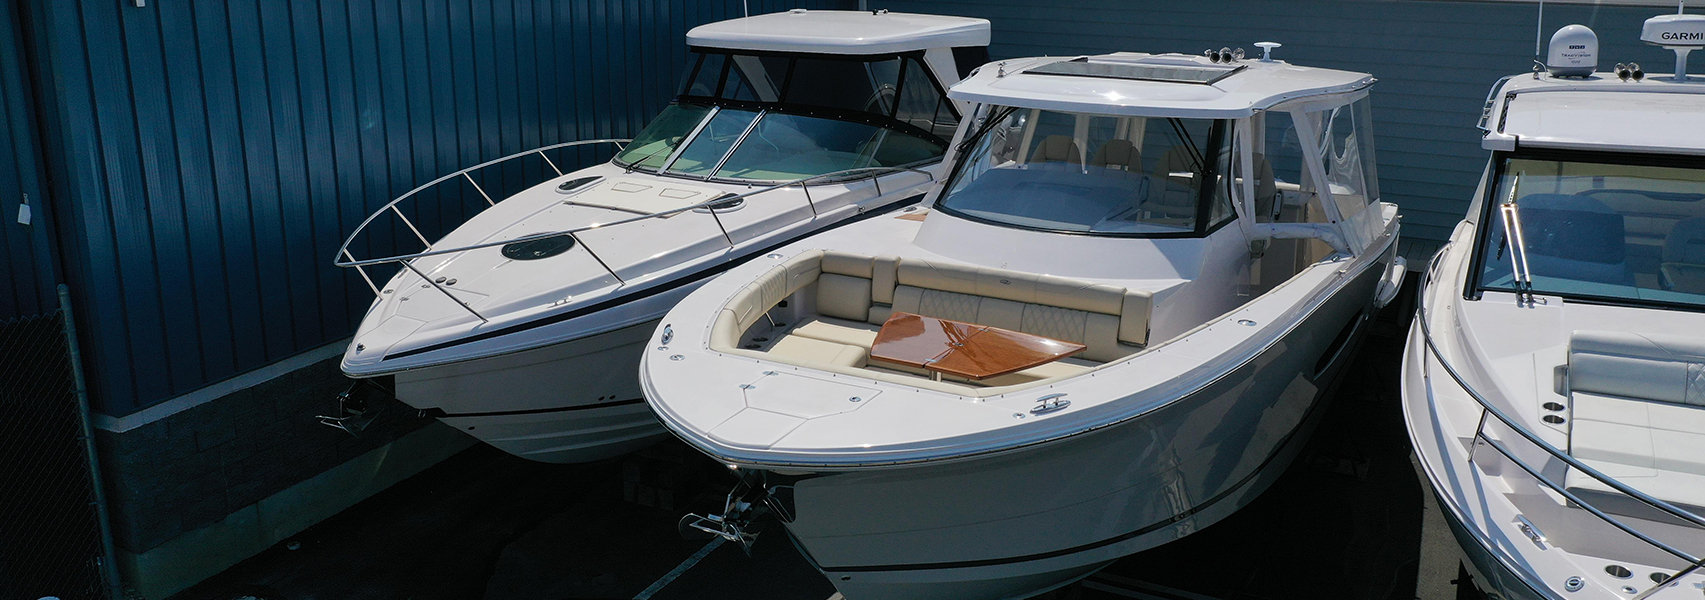 2021 Regal 38 SAV in stock at Sheltered Cove Marina in Tuckerton, NJ